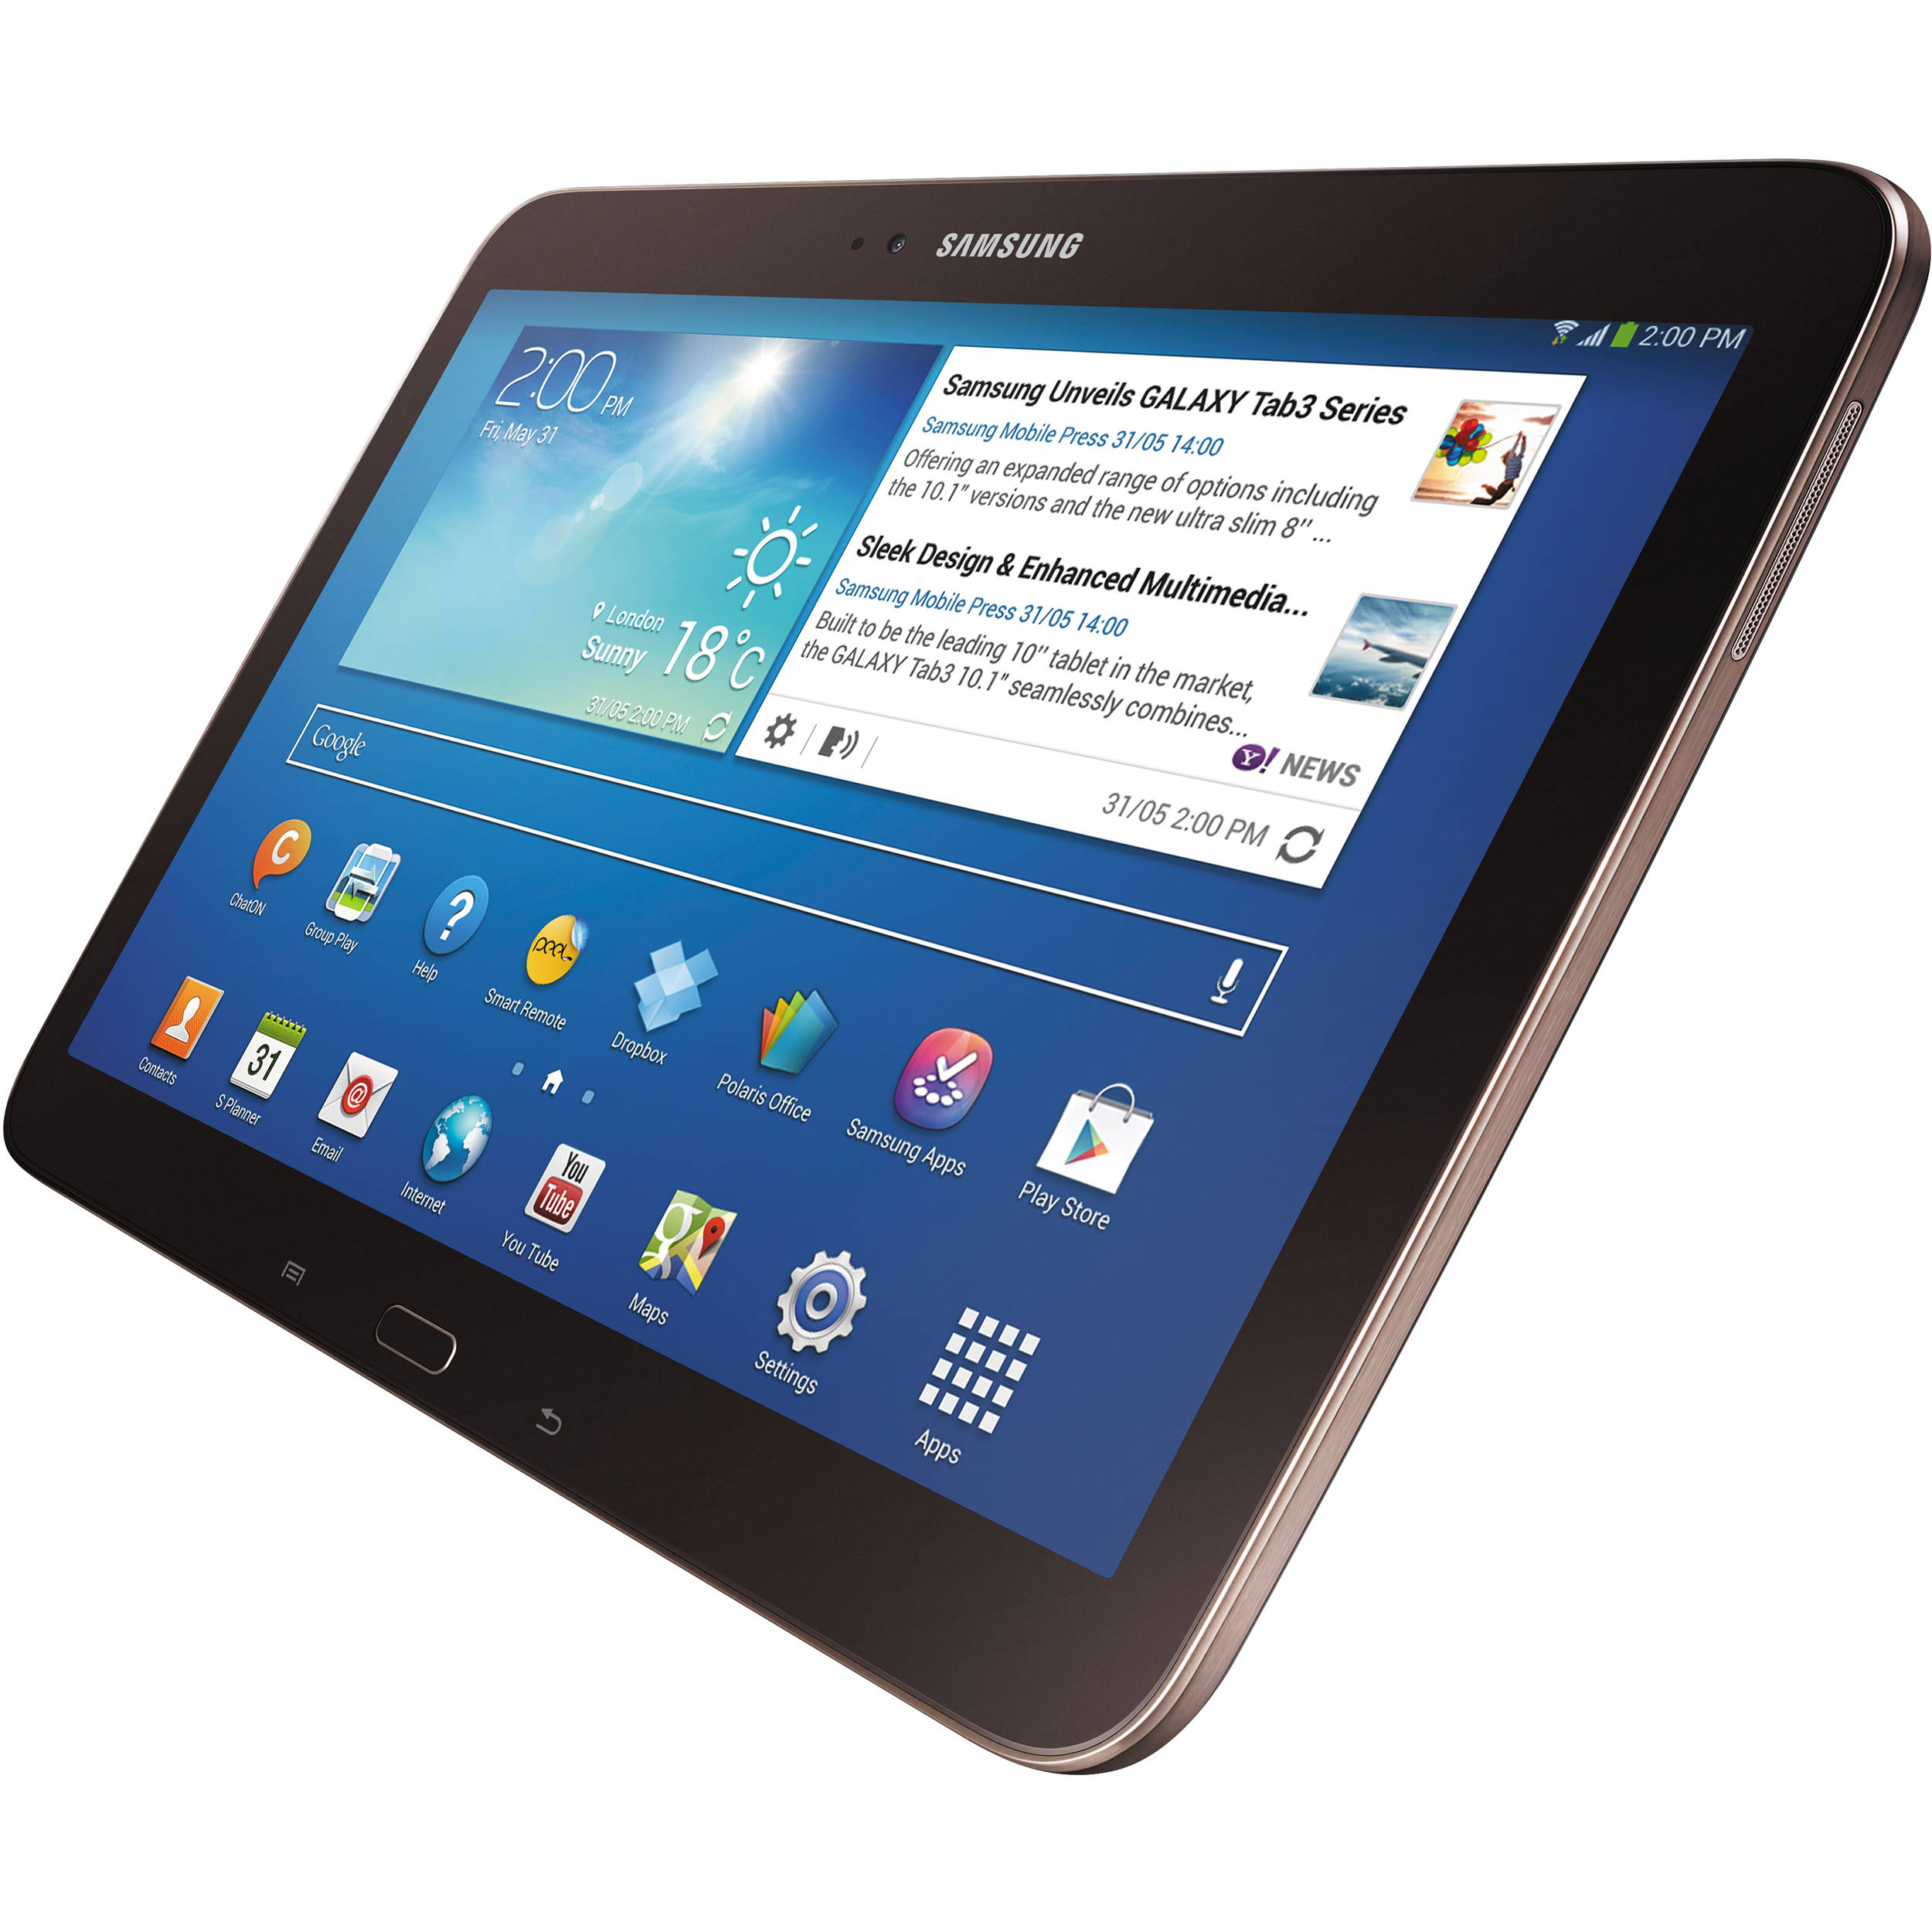 samsung 16gb galaxy tab 3 10 1 wi fi tablet gt p5210gnyxar. Black Bedroom Furniture Sets. Home Design Ideas